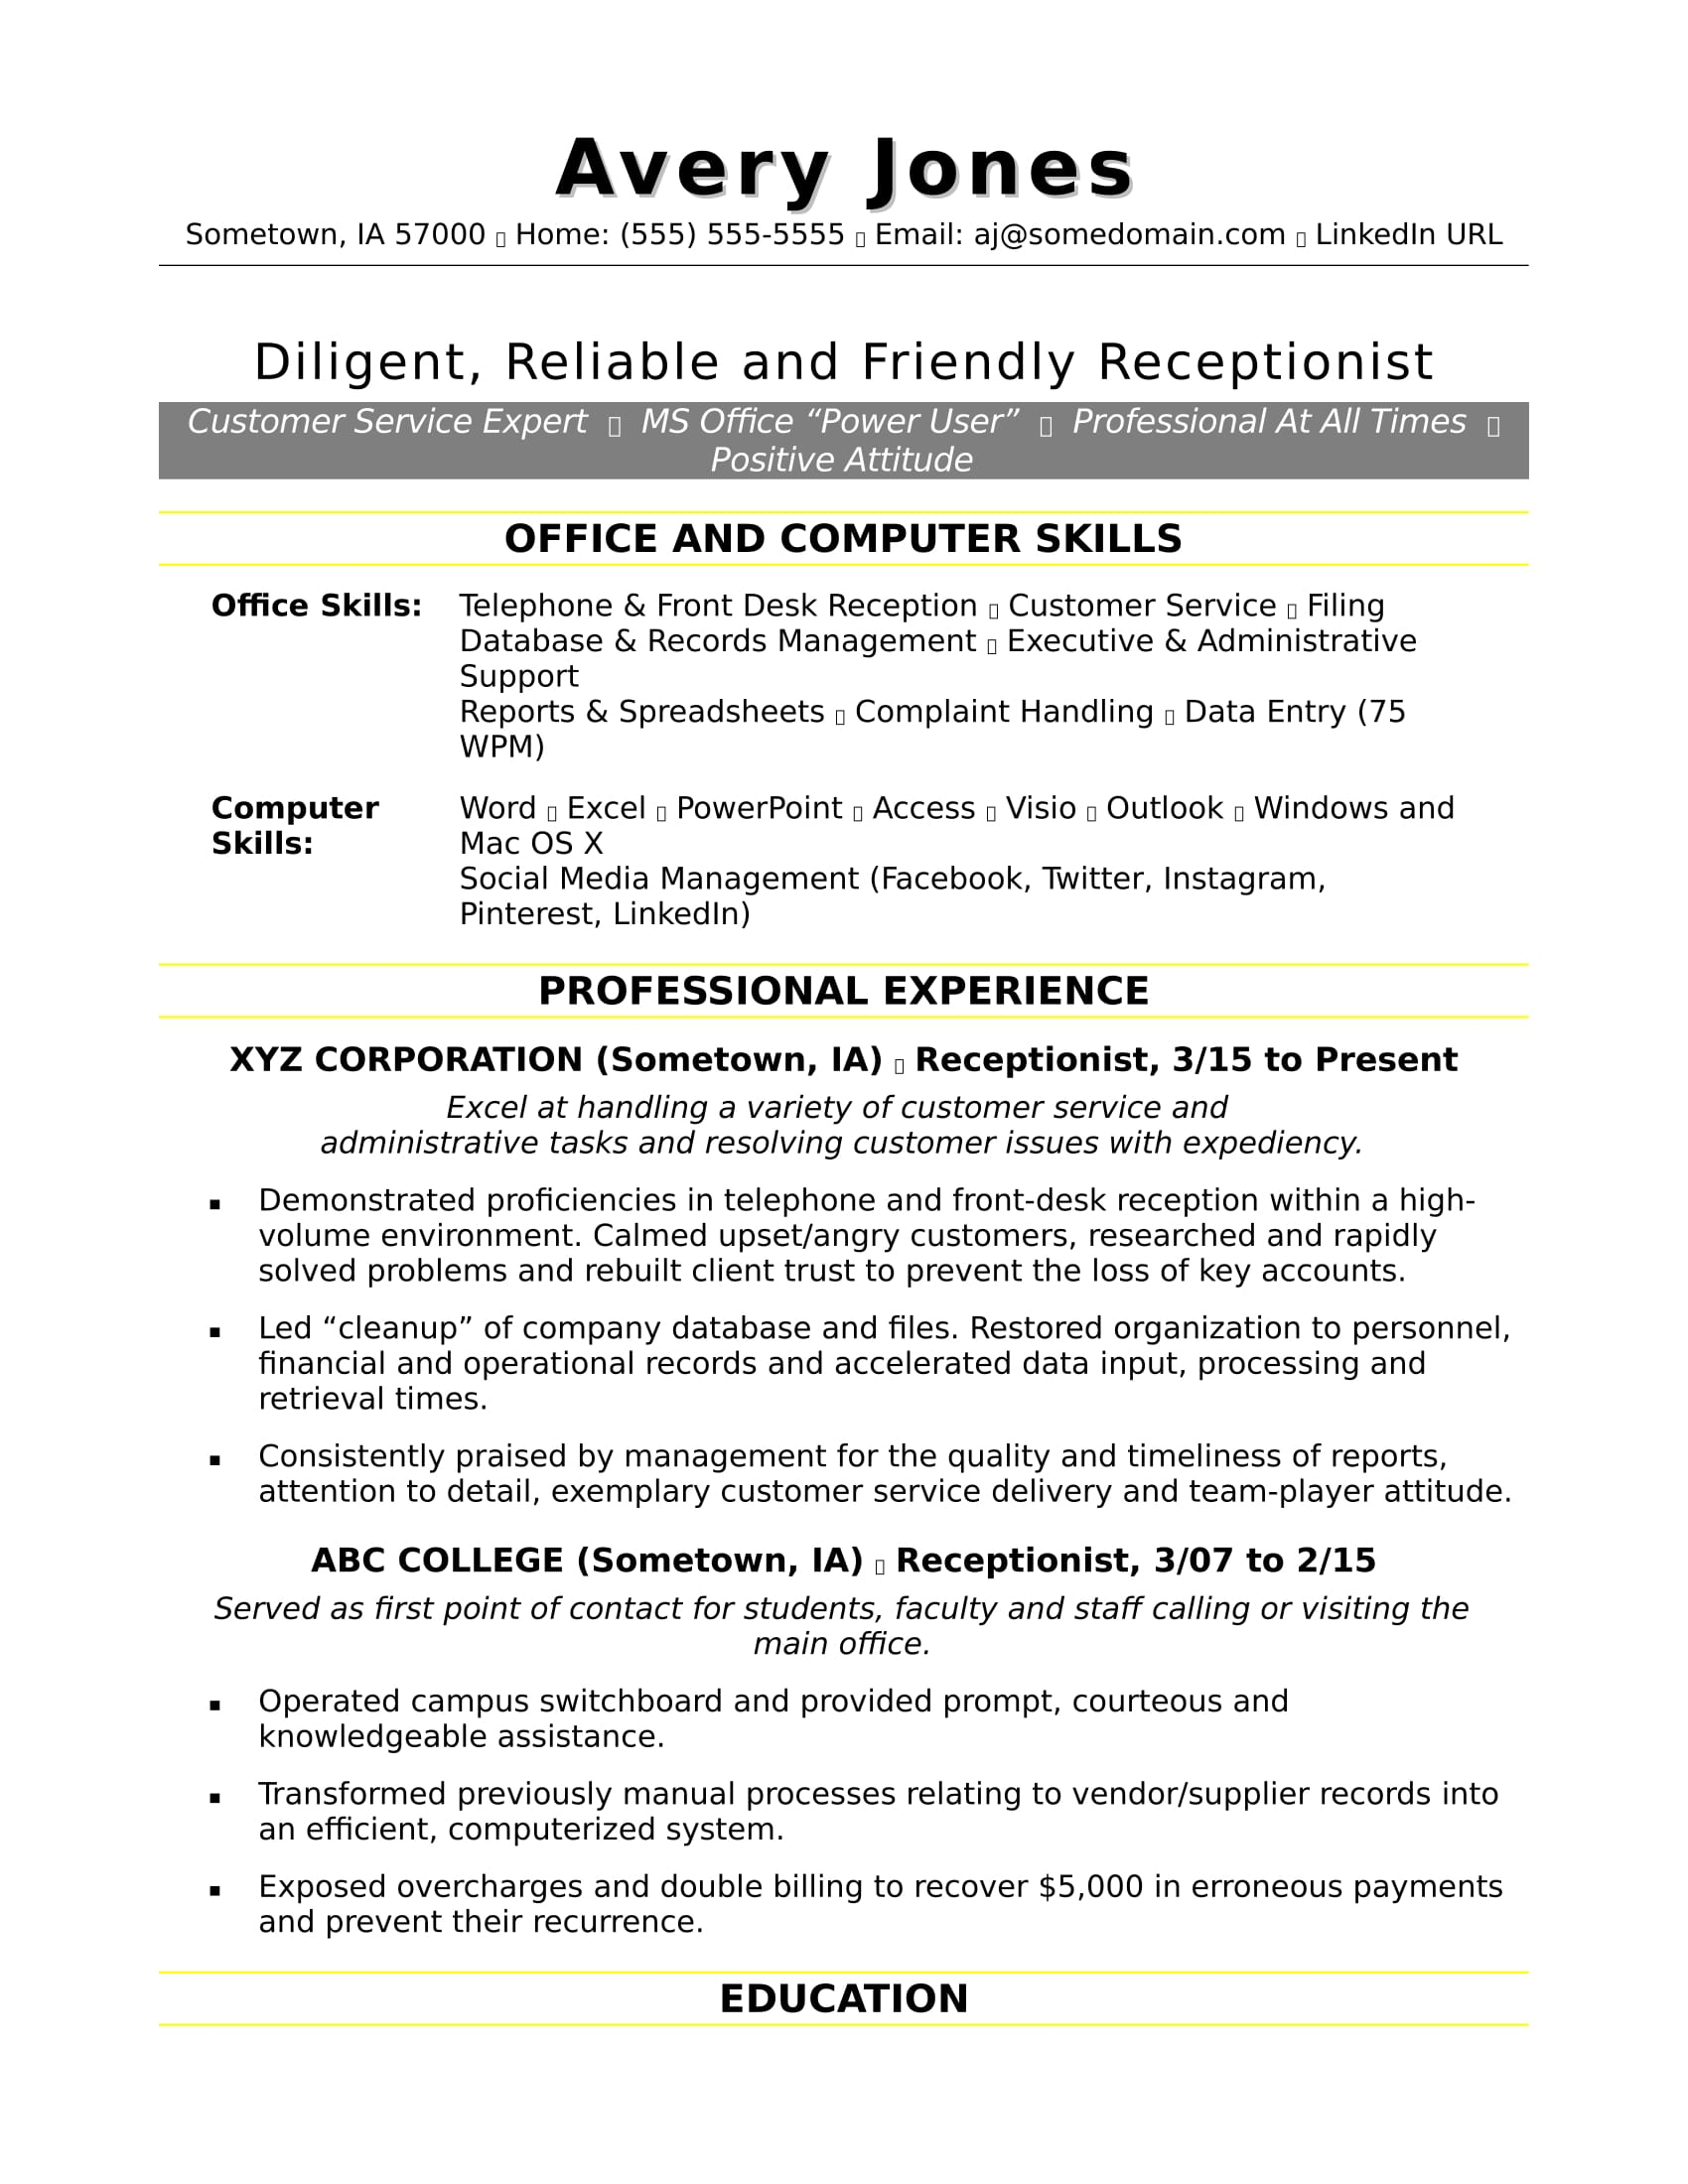 sample resume for a receptionist - Resume Sample Computer Skills